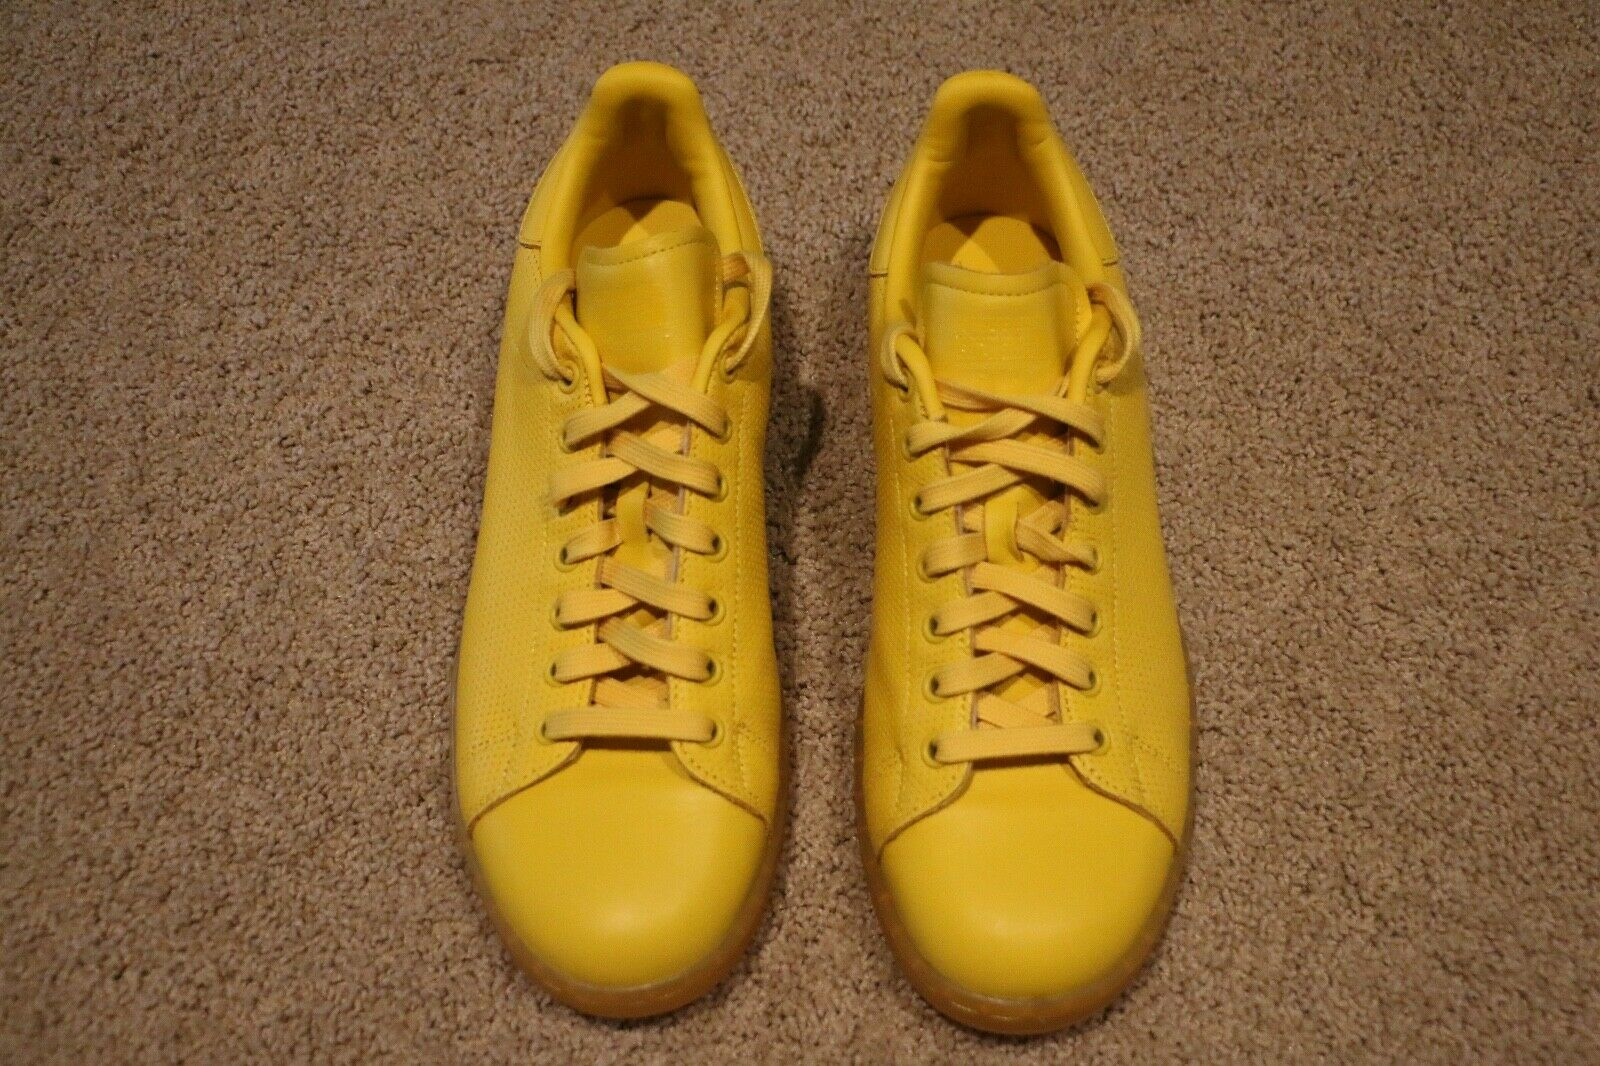 ADIDAS STAN SMITH ORIGINAL TENNIS SHOE 9.5 YELLOW NEW